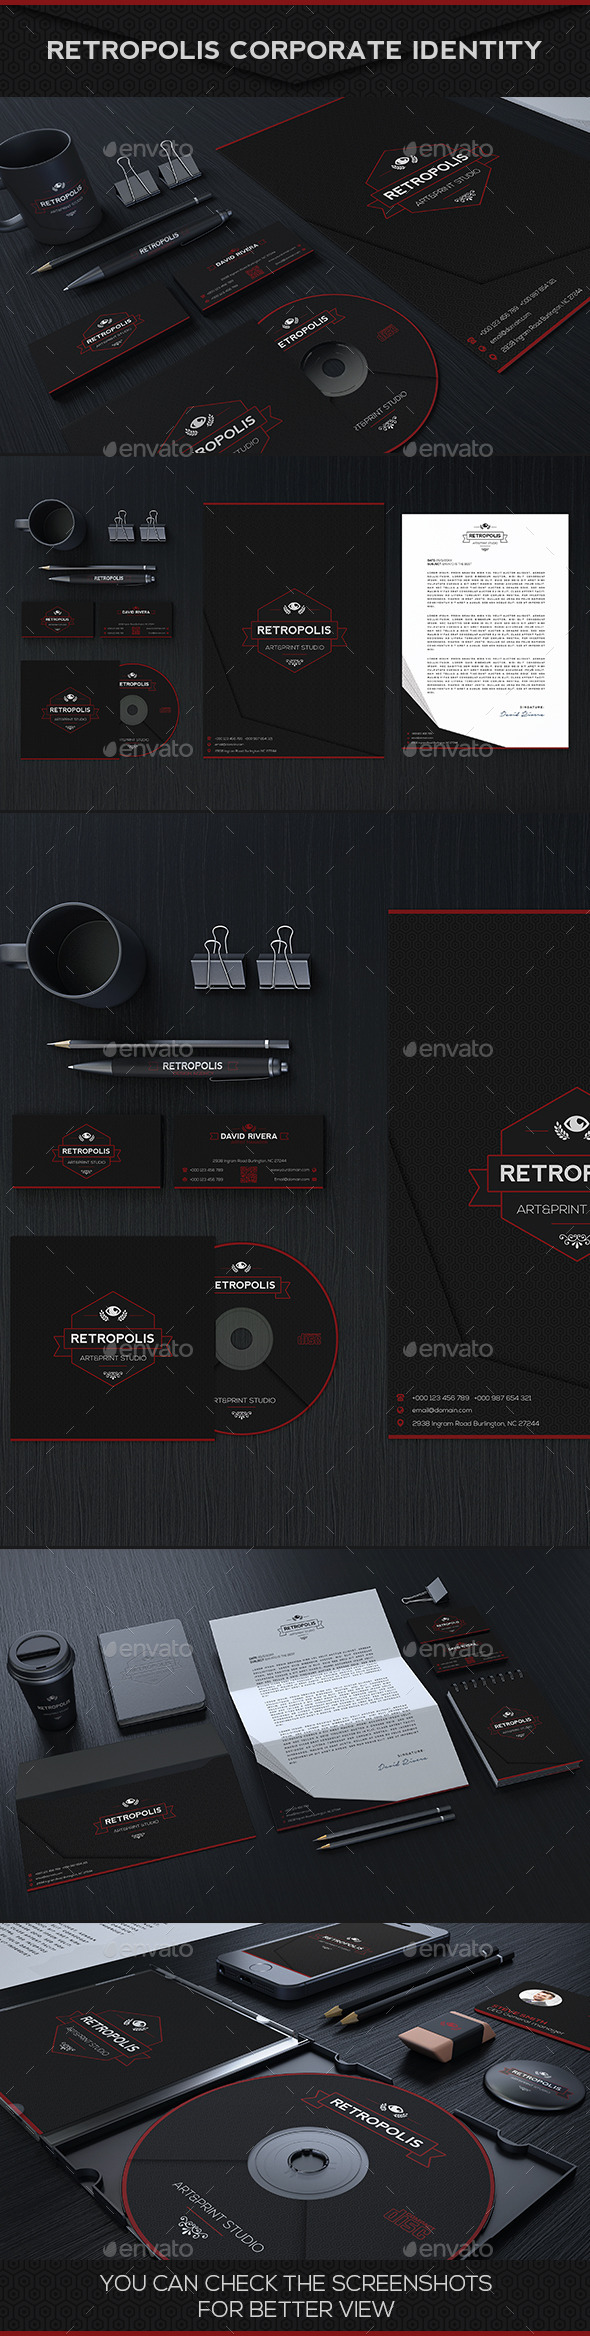 GraphicRiver Retropolis Corporate Identity 10049868